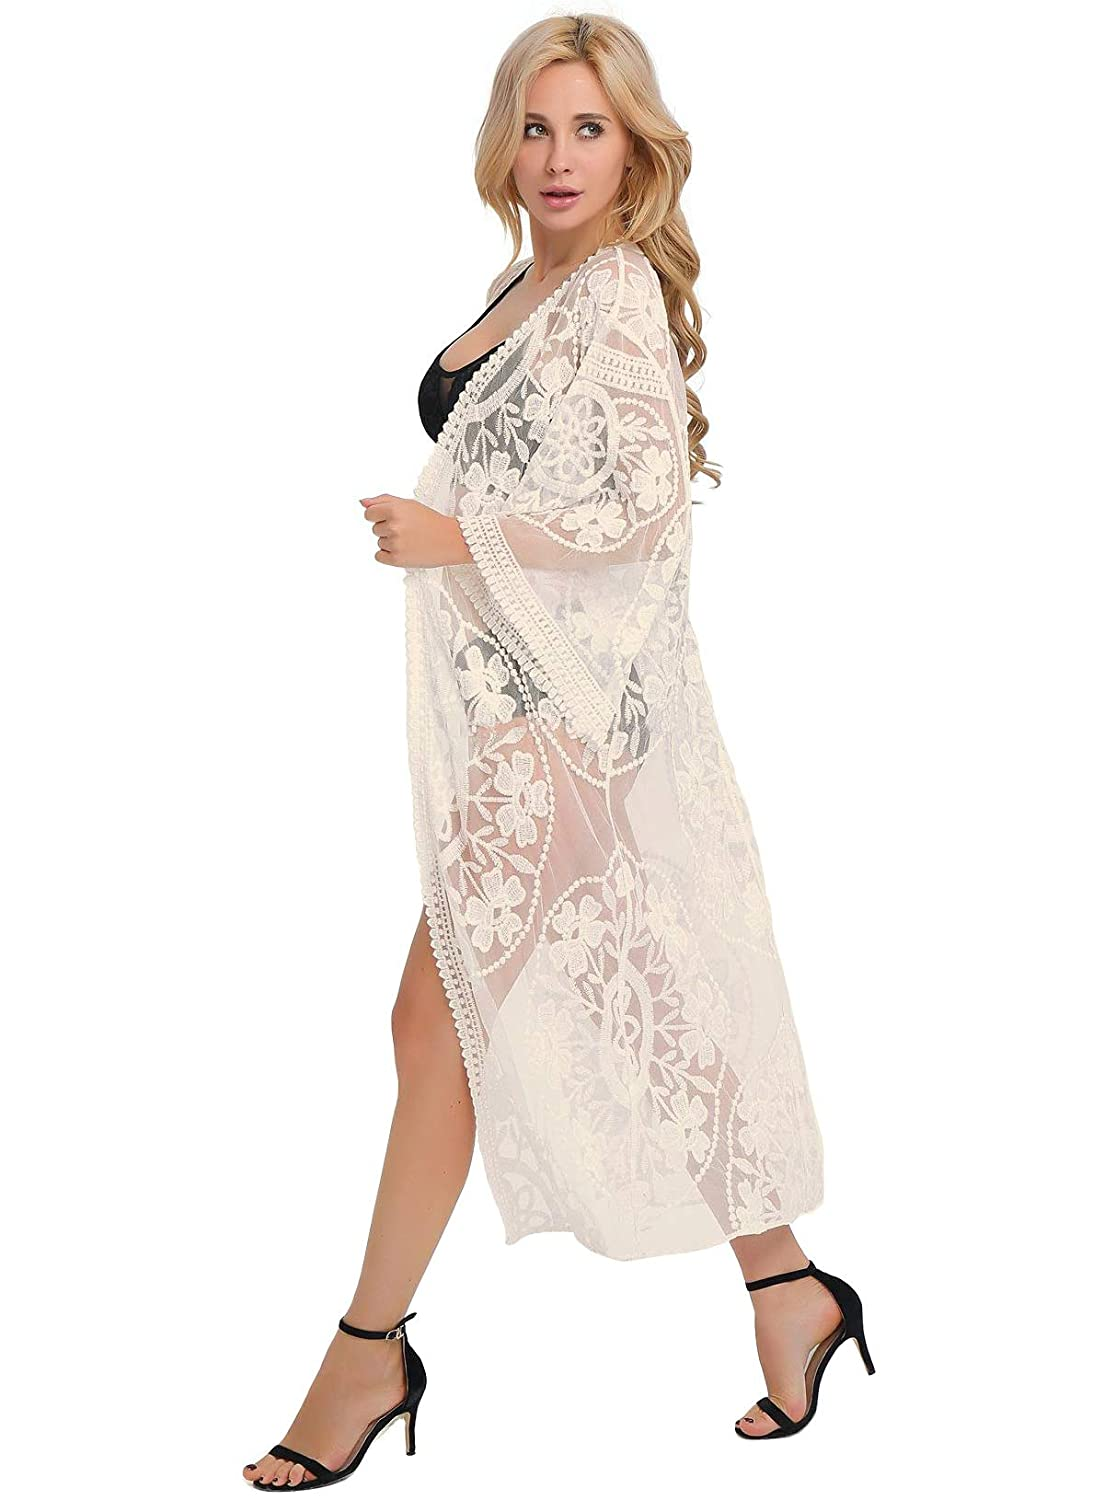 57f6cac8f9 ESPRELA Women Swimsuit Cover Up Bathing Suit Kimono Long Beach Dress Floral  Lace Bikini Swim Coverup (One Size, Beige) at Amazon Women's Clothing store: